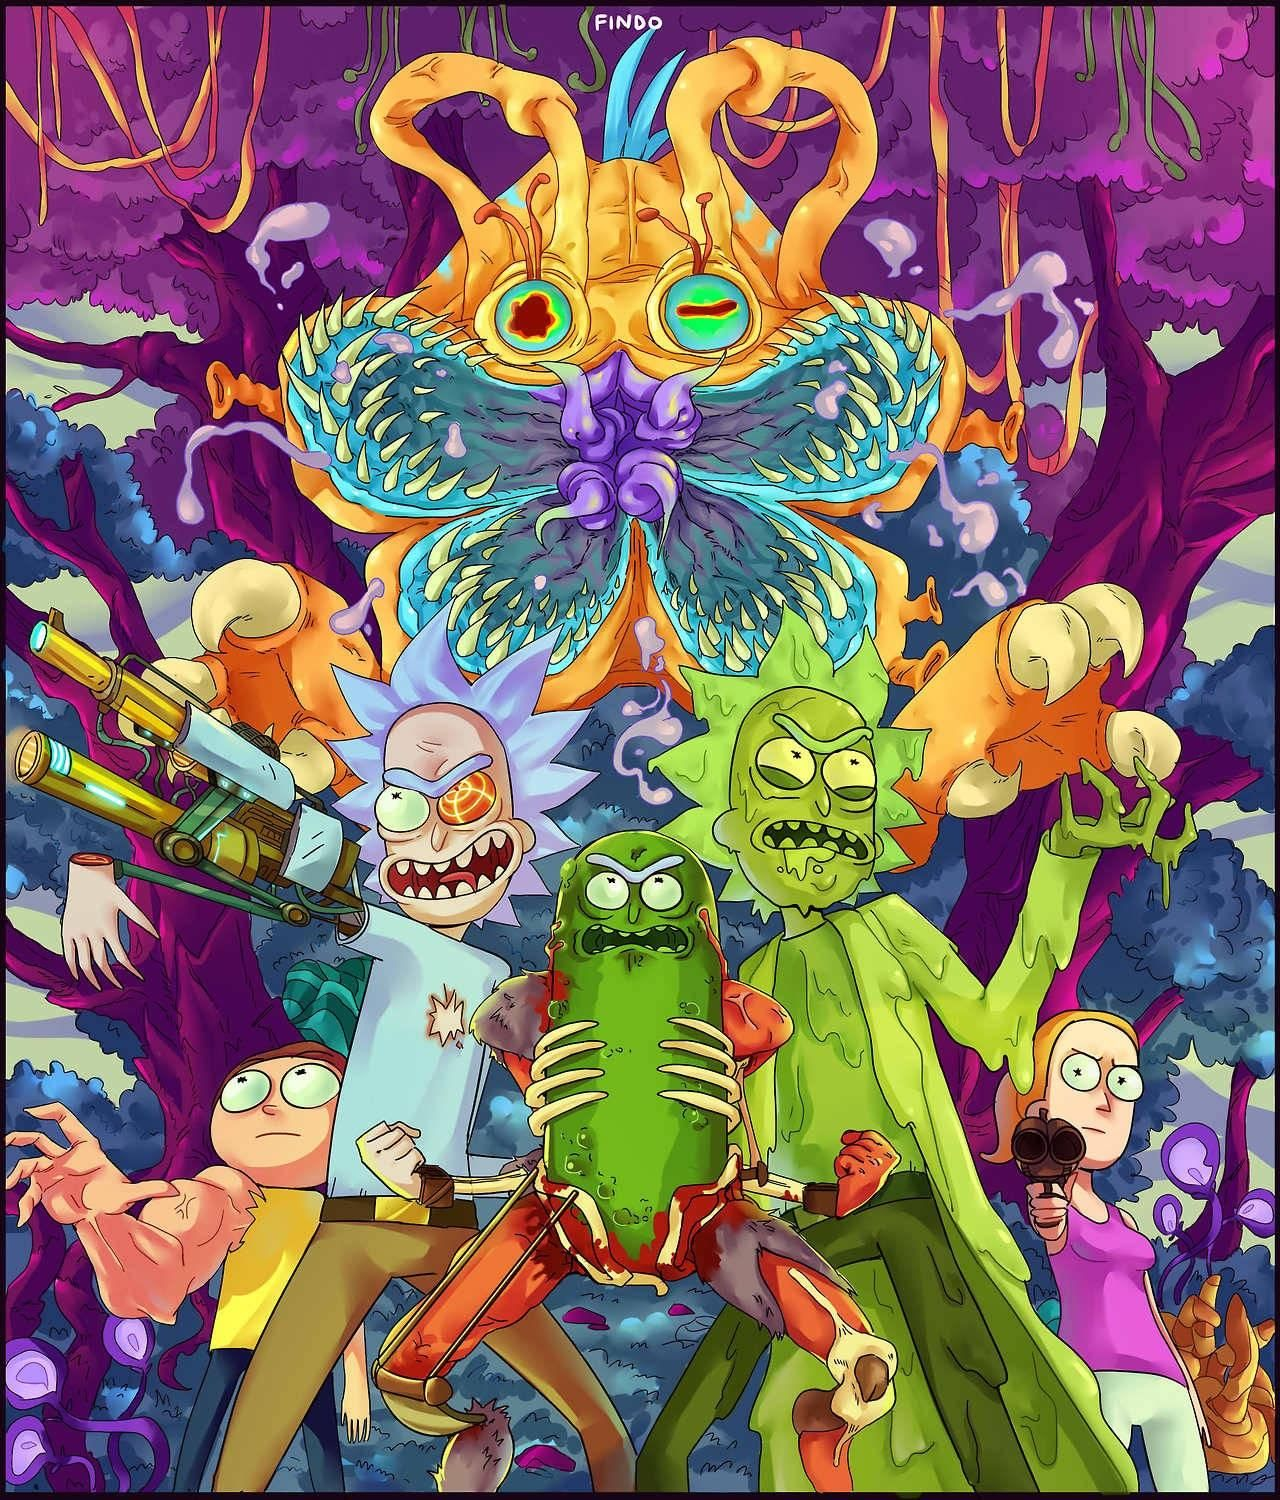 Pickle Rick Holding It Down Rickandmorty Rick Picklerick Morty Wubbalubbadubdub Getschwif Rick And Morty Poster Rick And Morty Drawing Cartoon Wallpaper